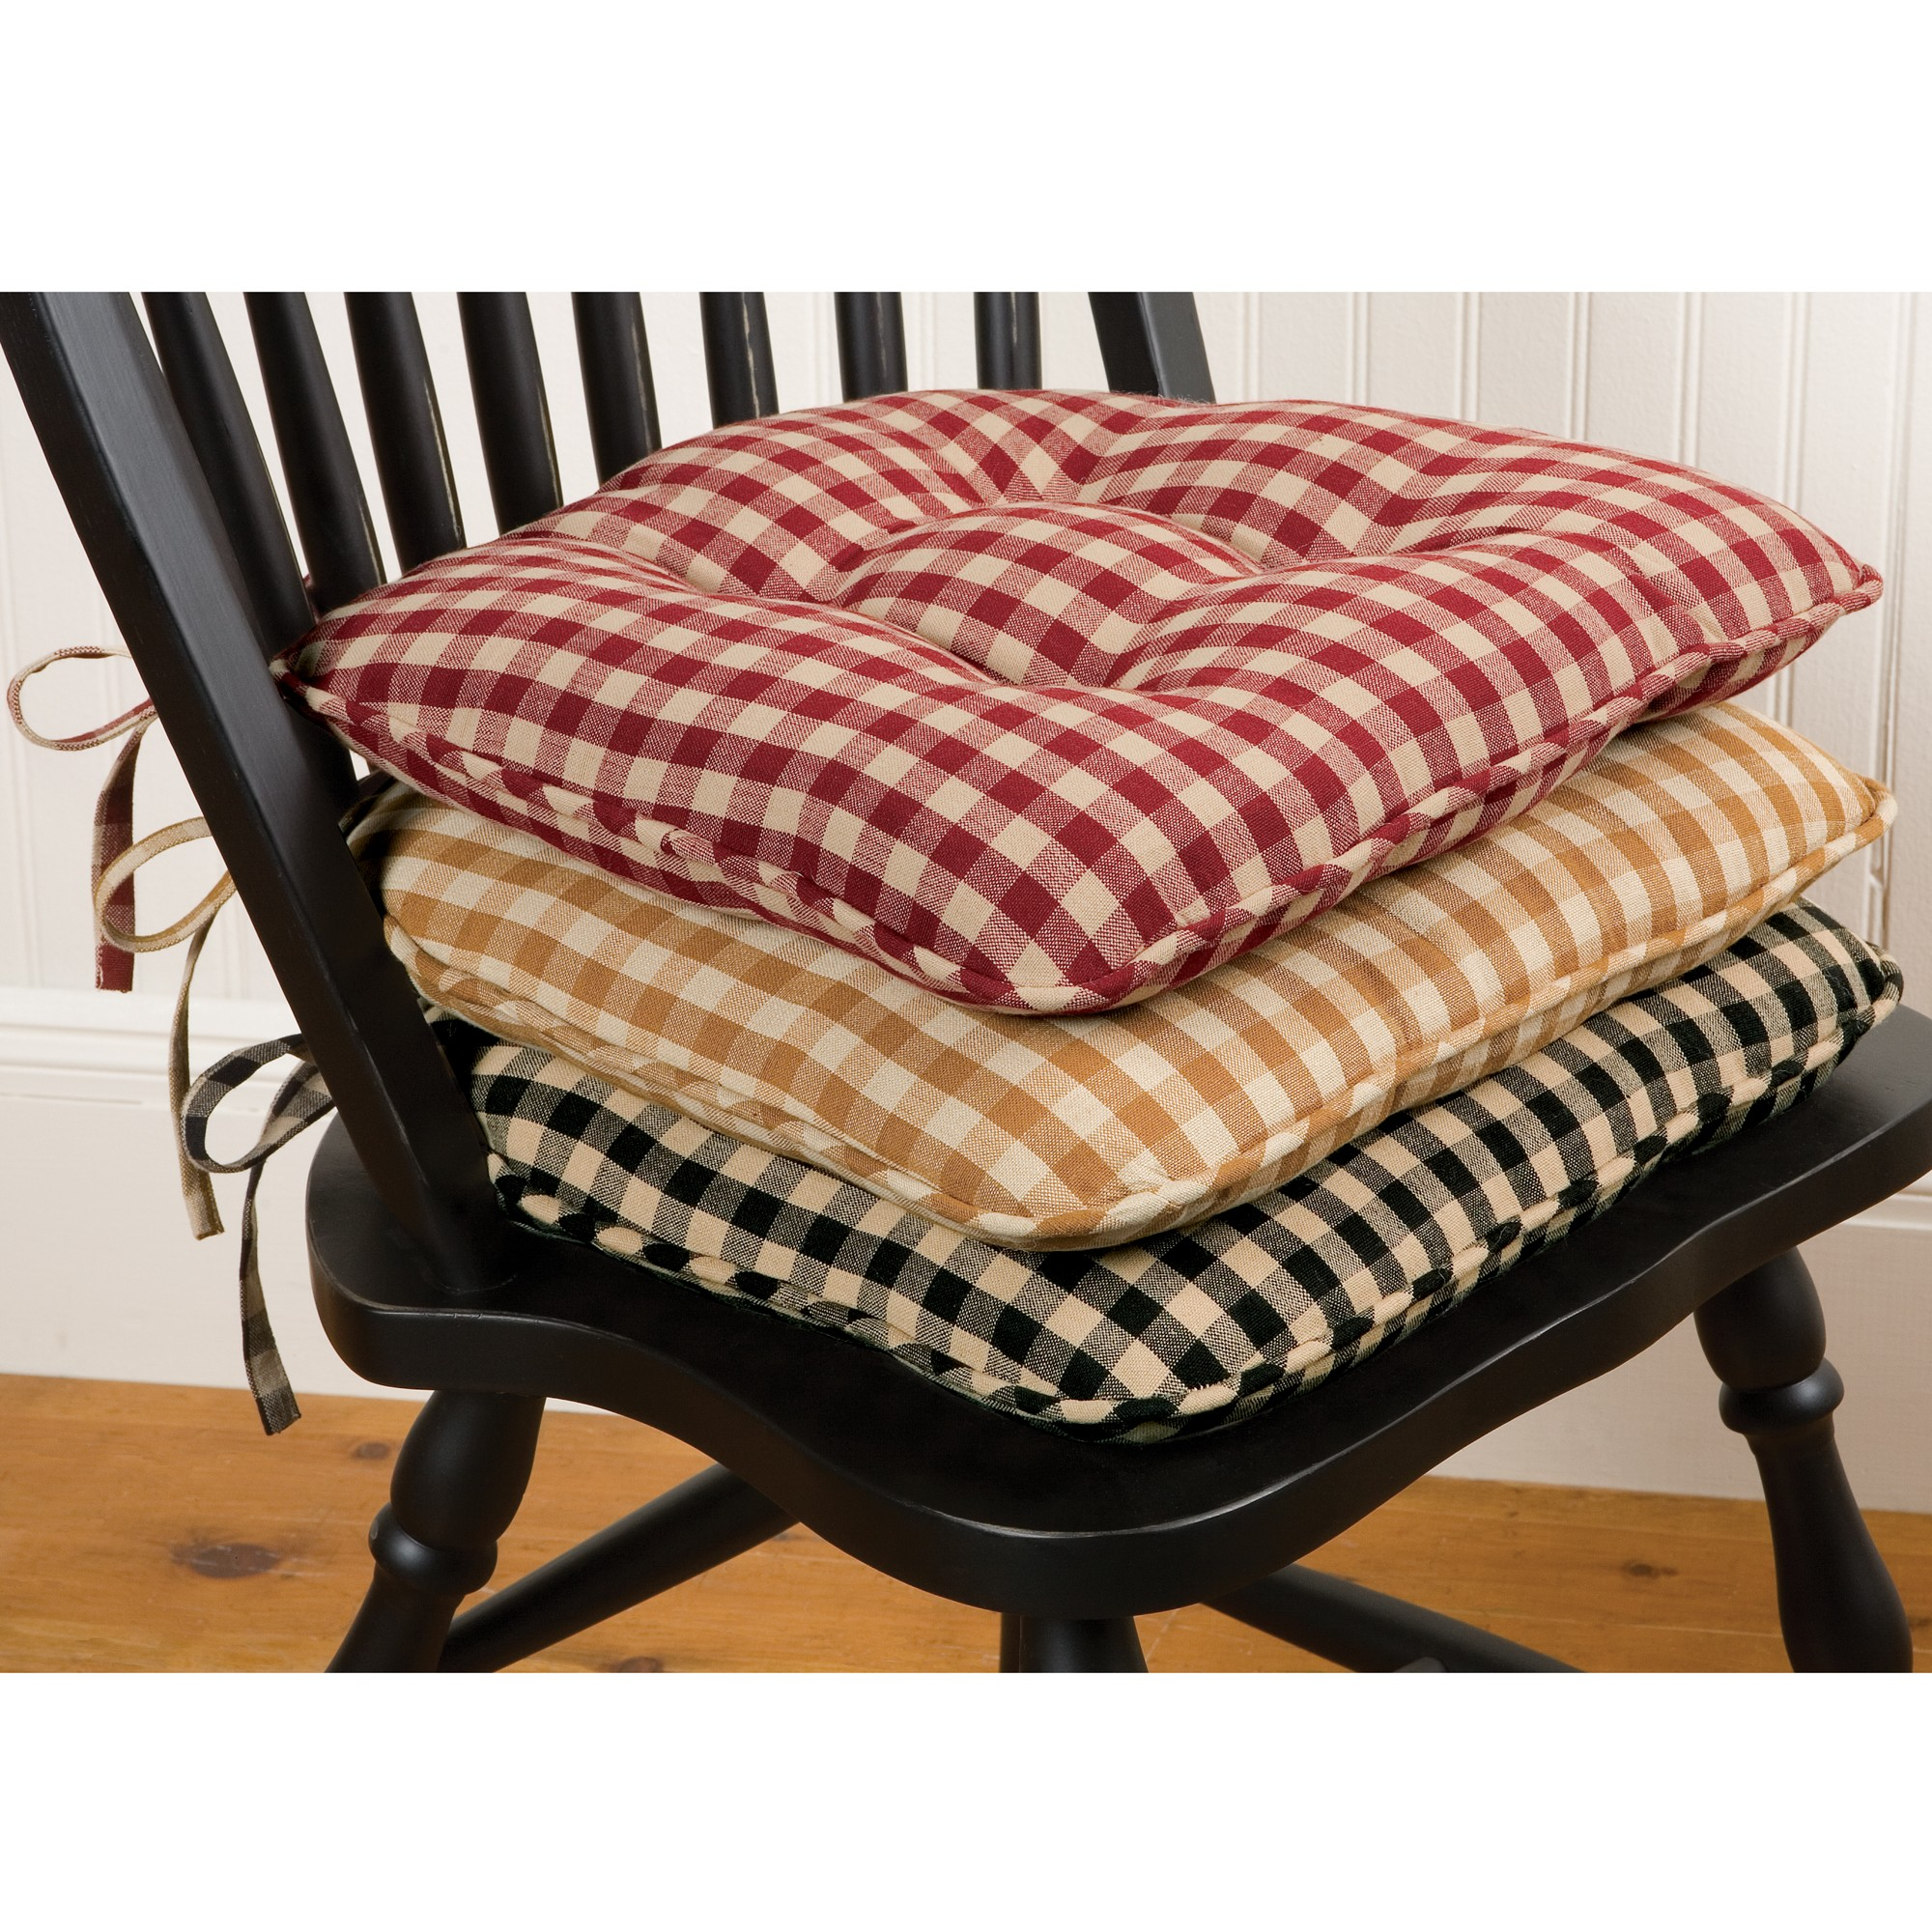 Country Chair Pads Cozy and Stylish  HomesFeed